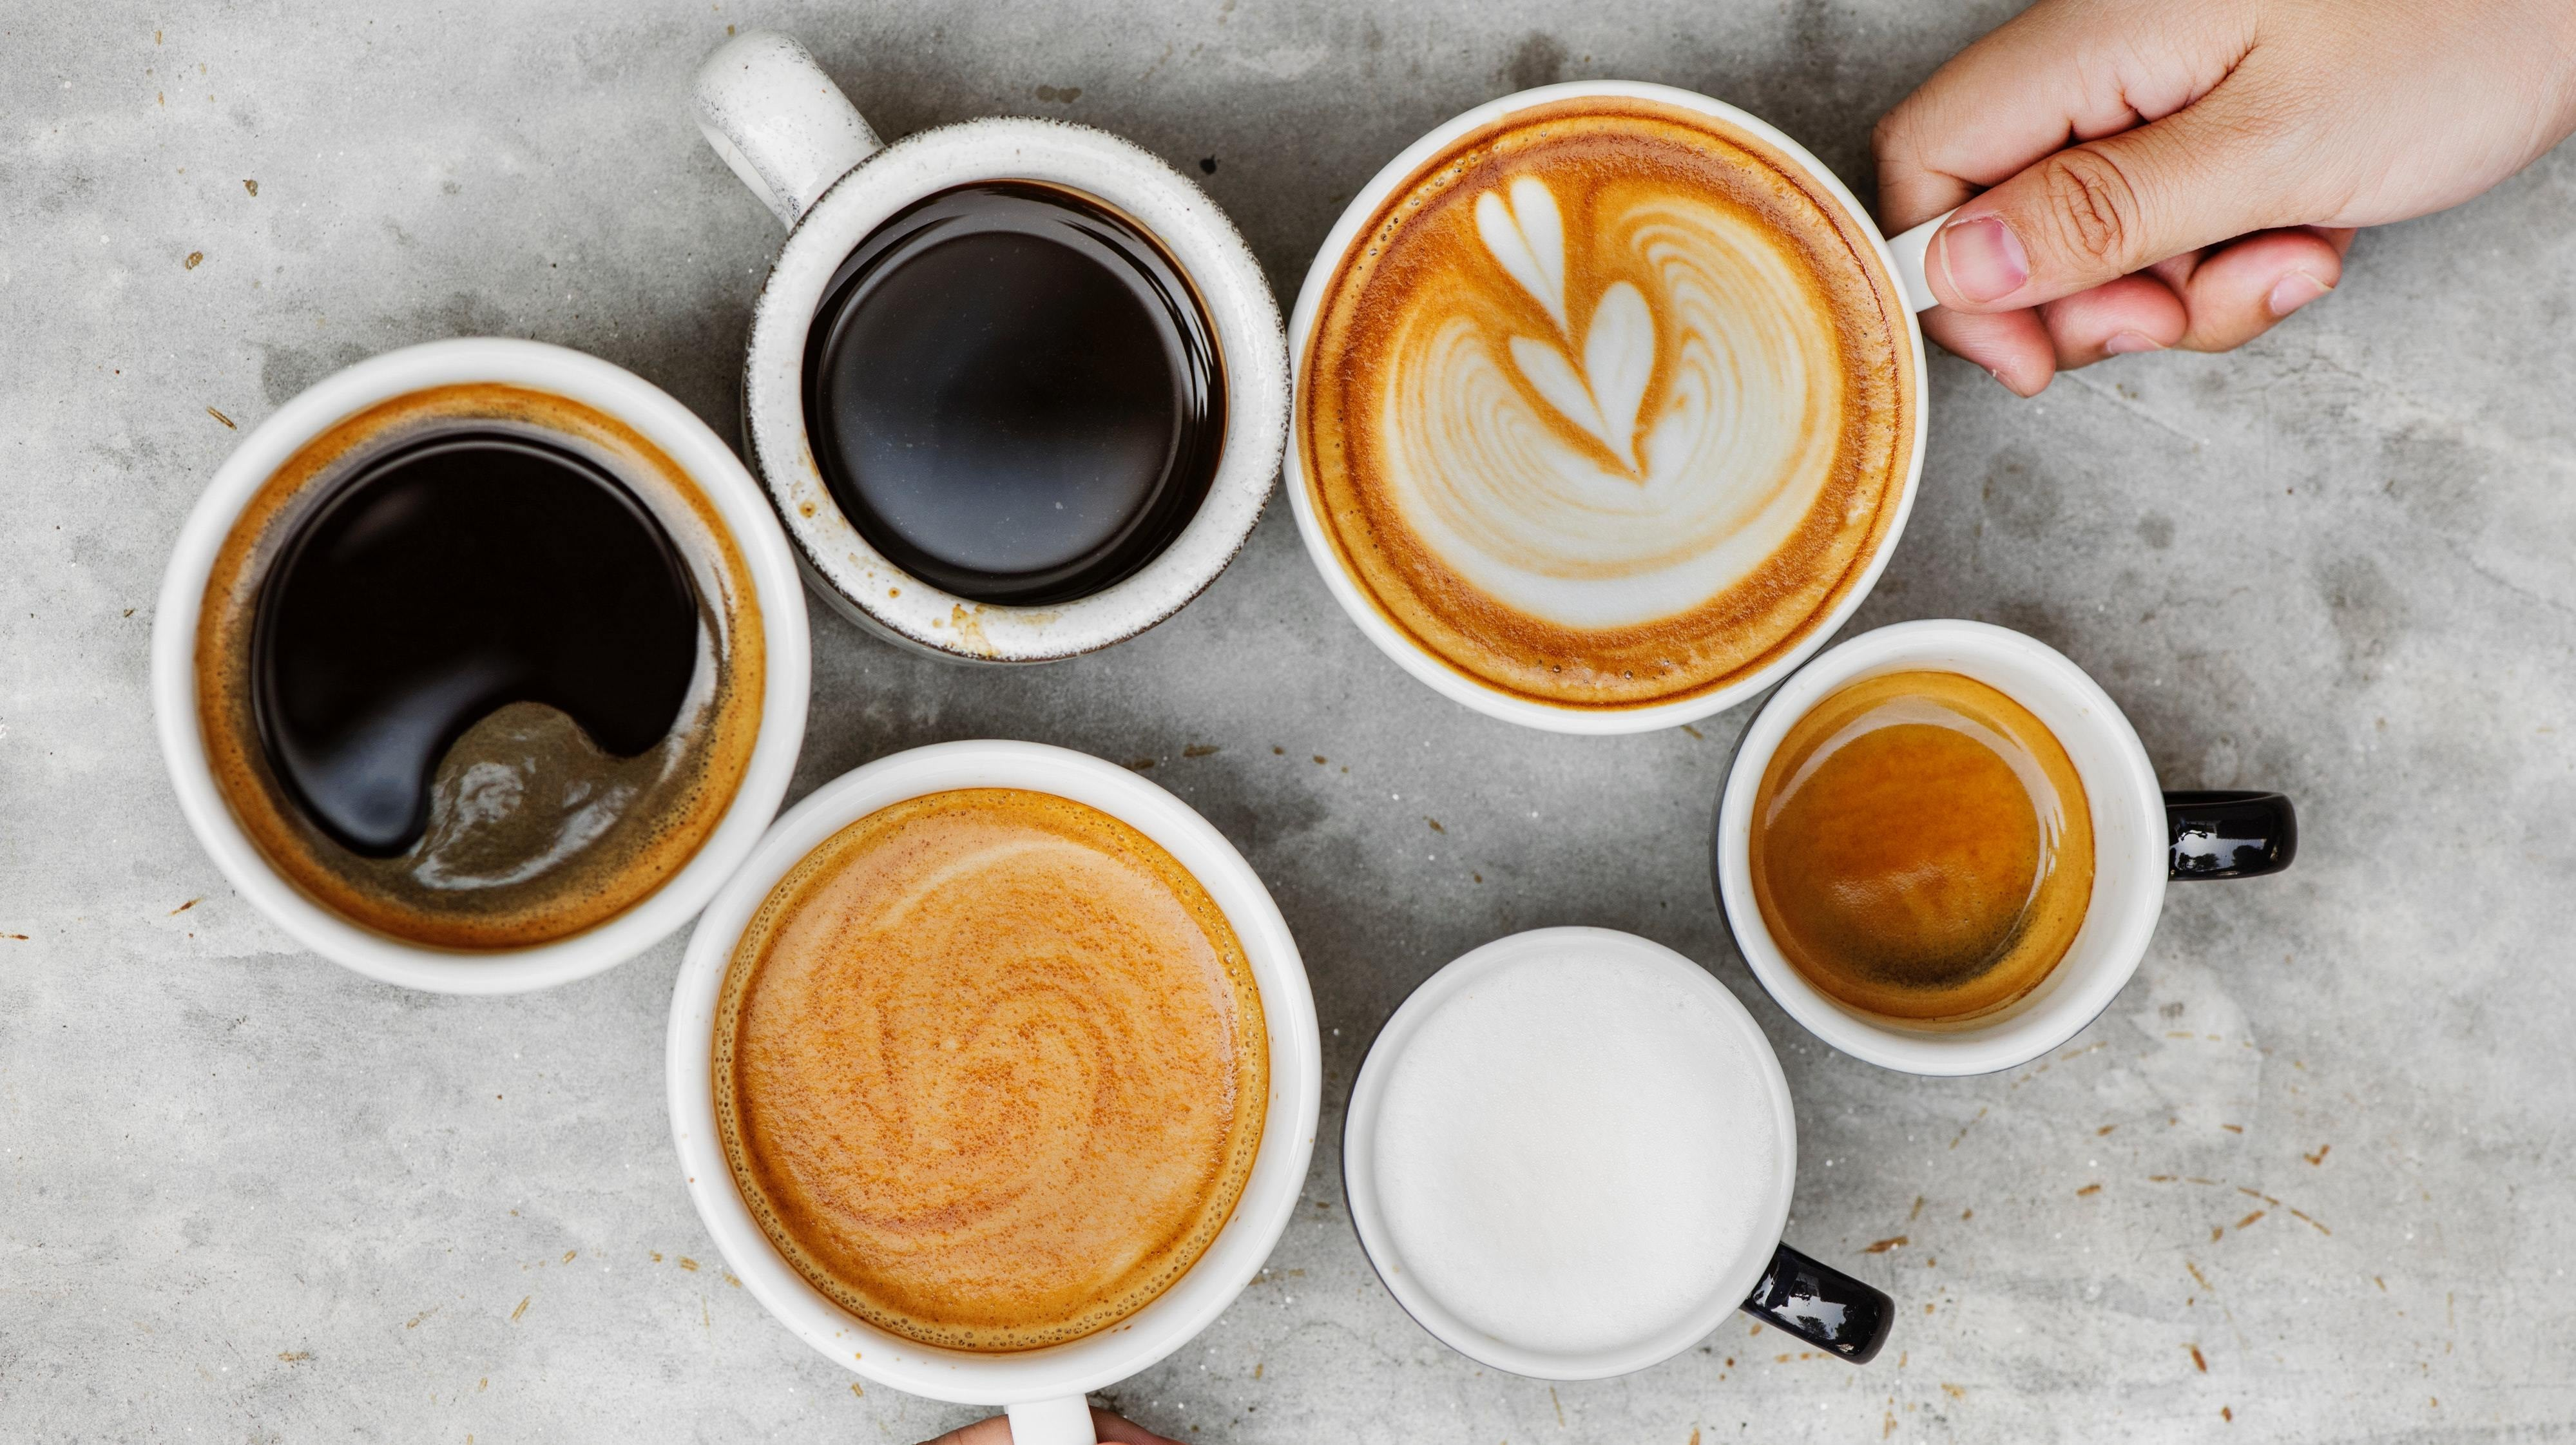 This Caffeine Calculator Helps You Plan Your Day